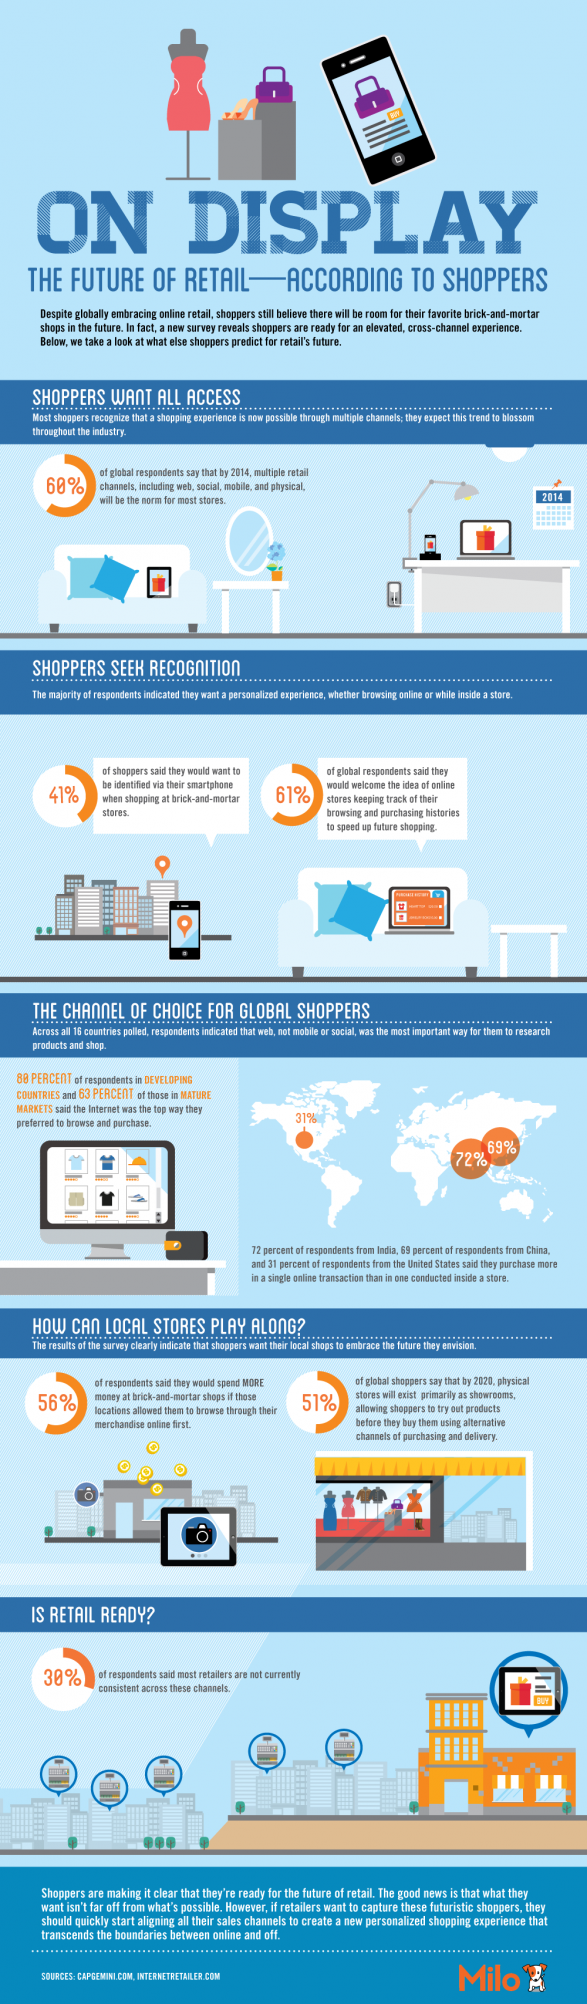 The Future of Retail � According to Shoppers